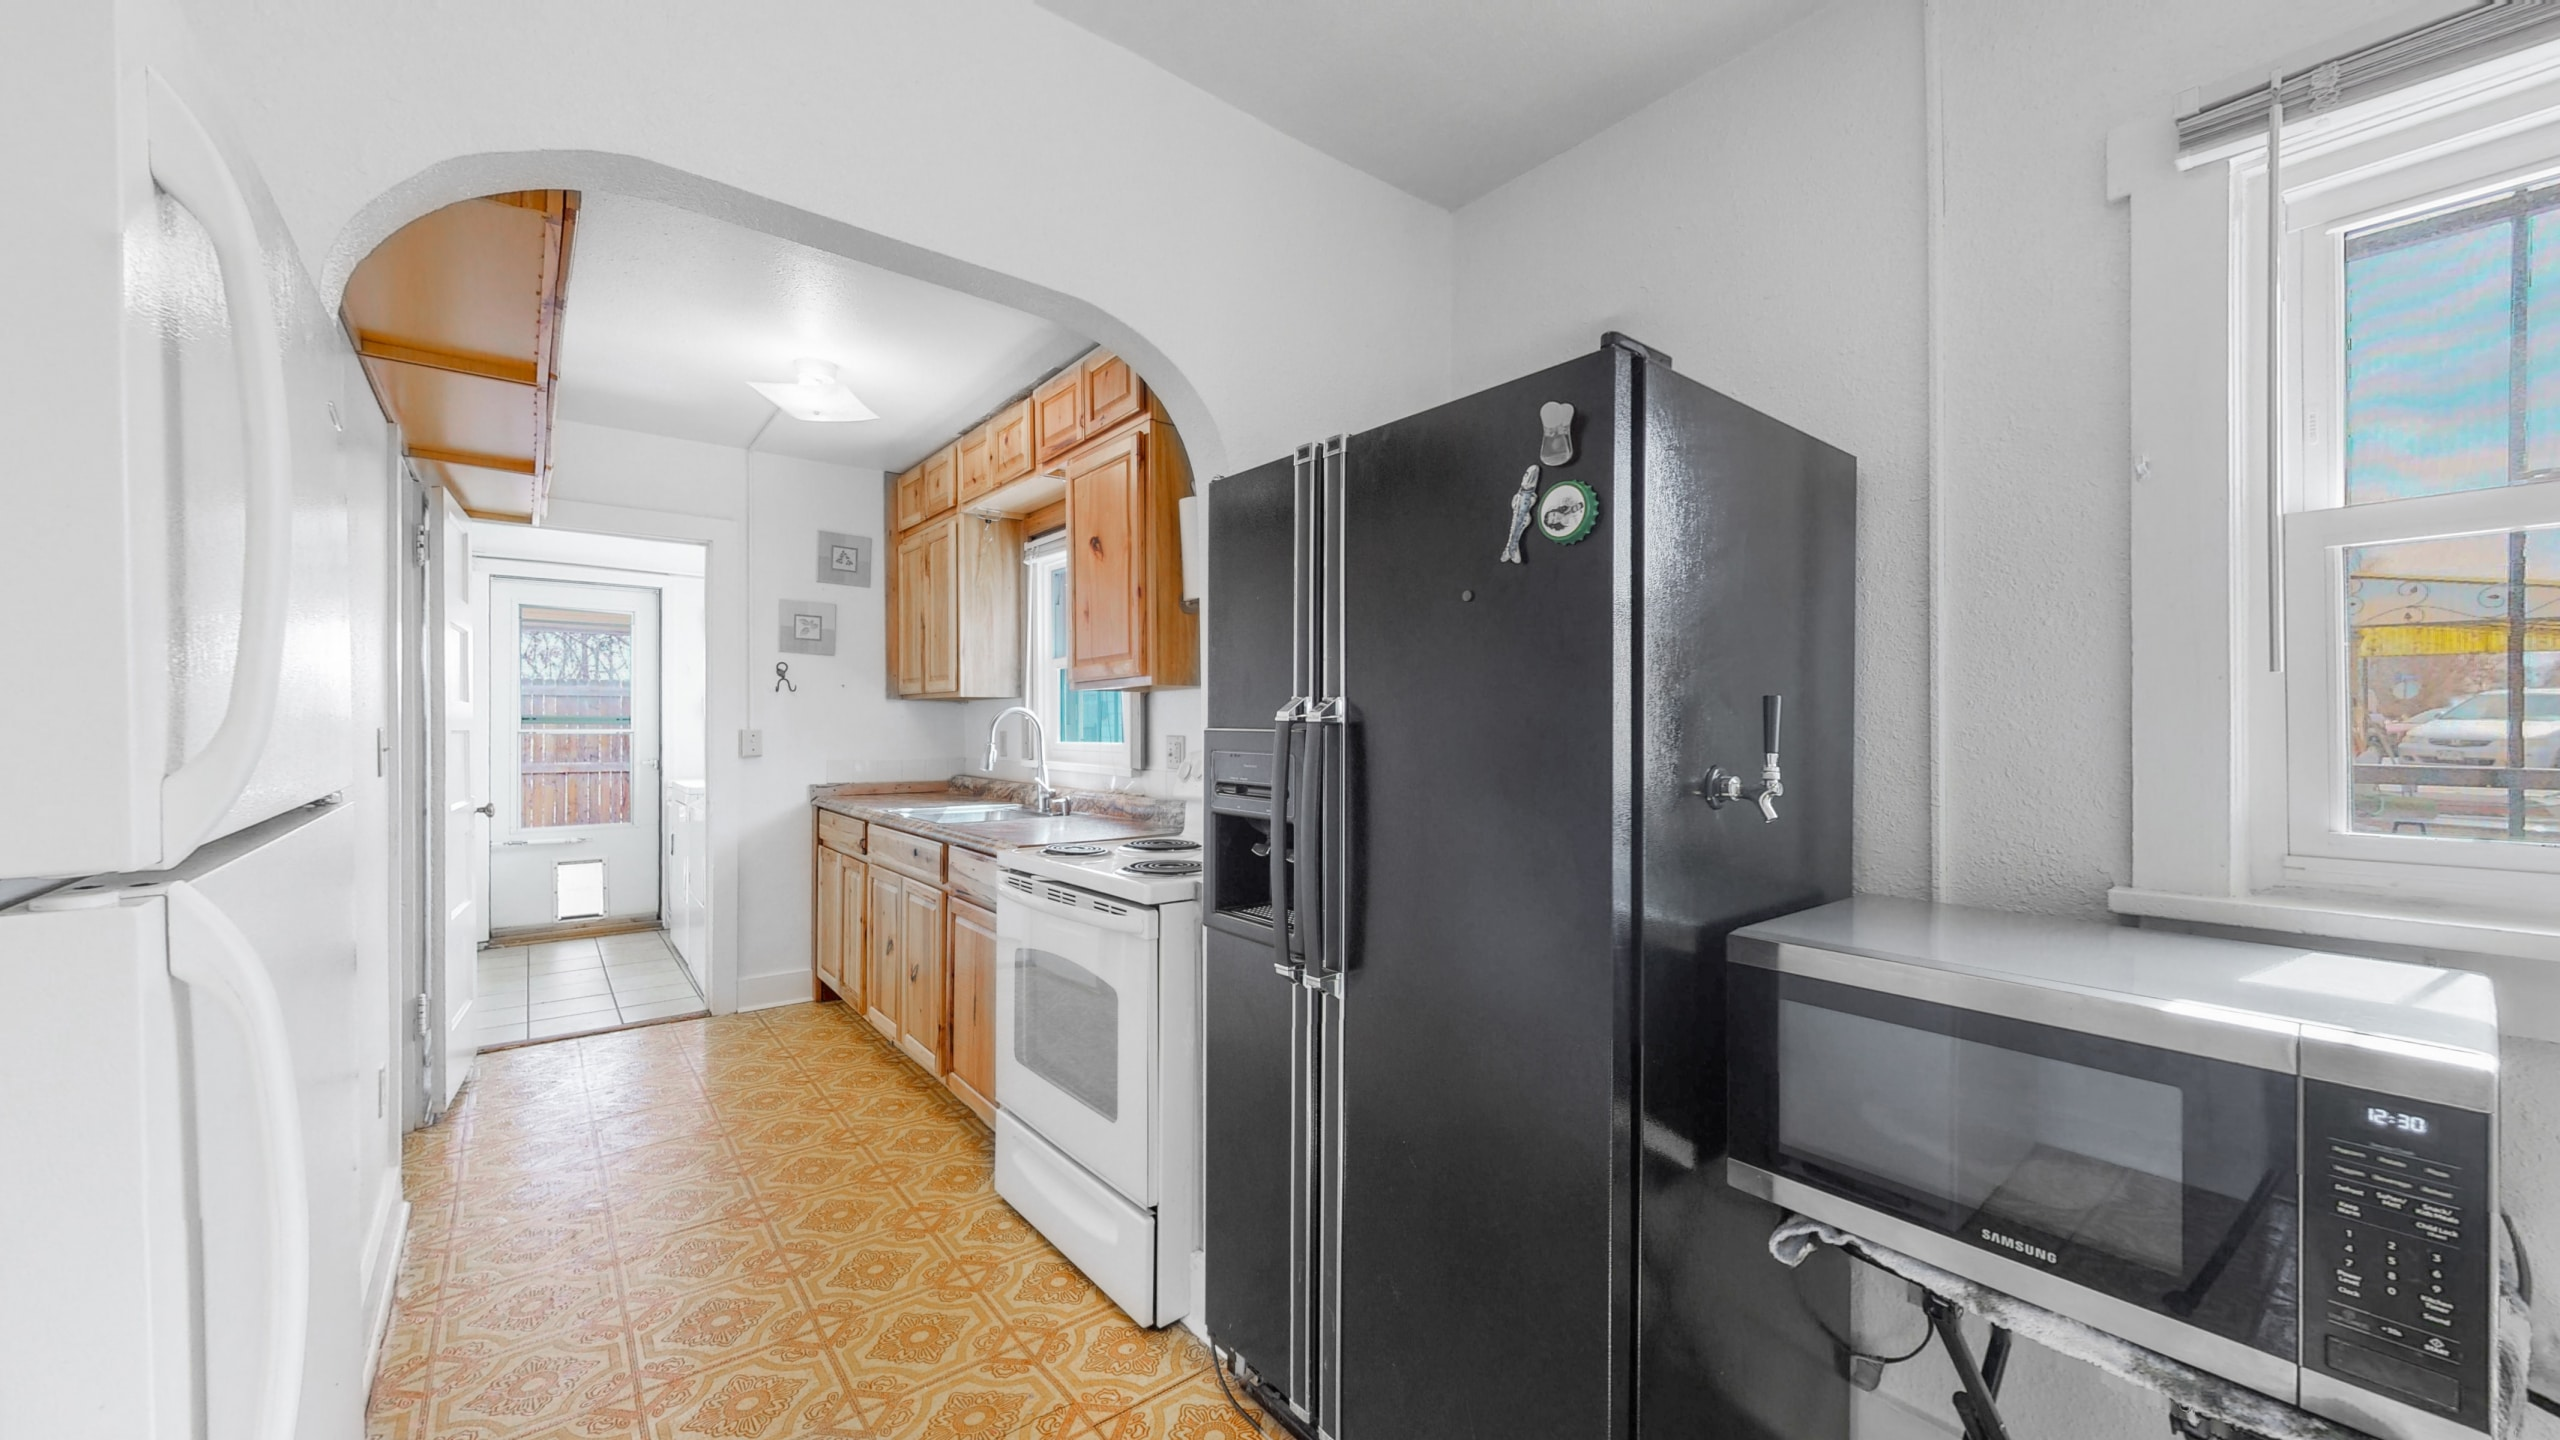 Downtown Brighton Home with large kitchen